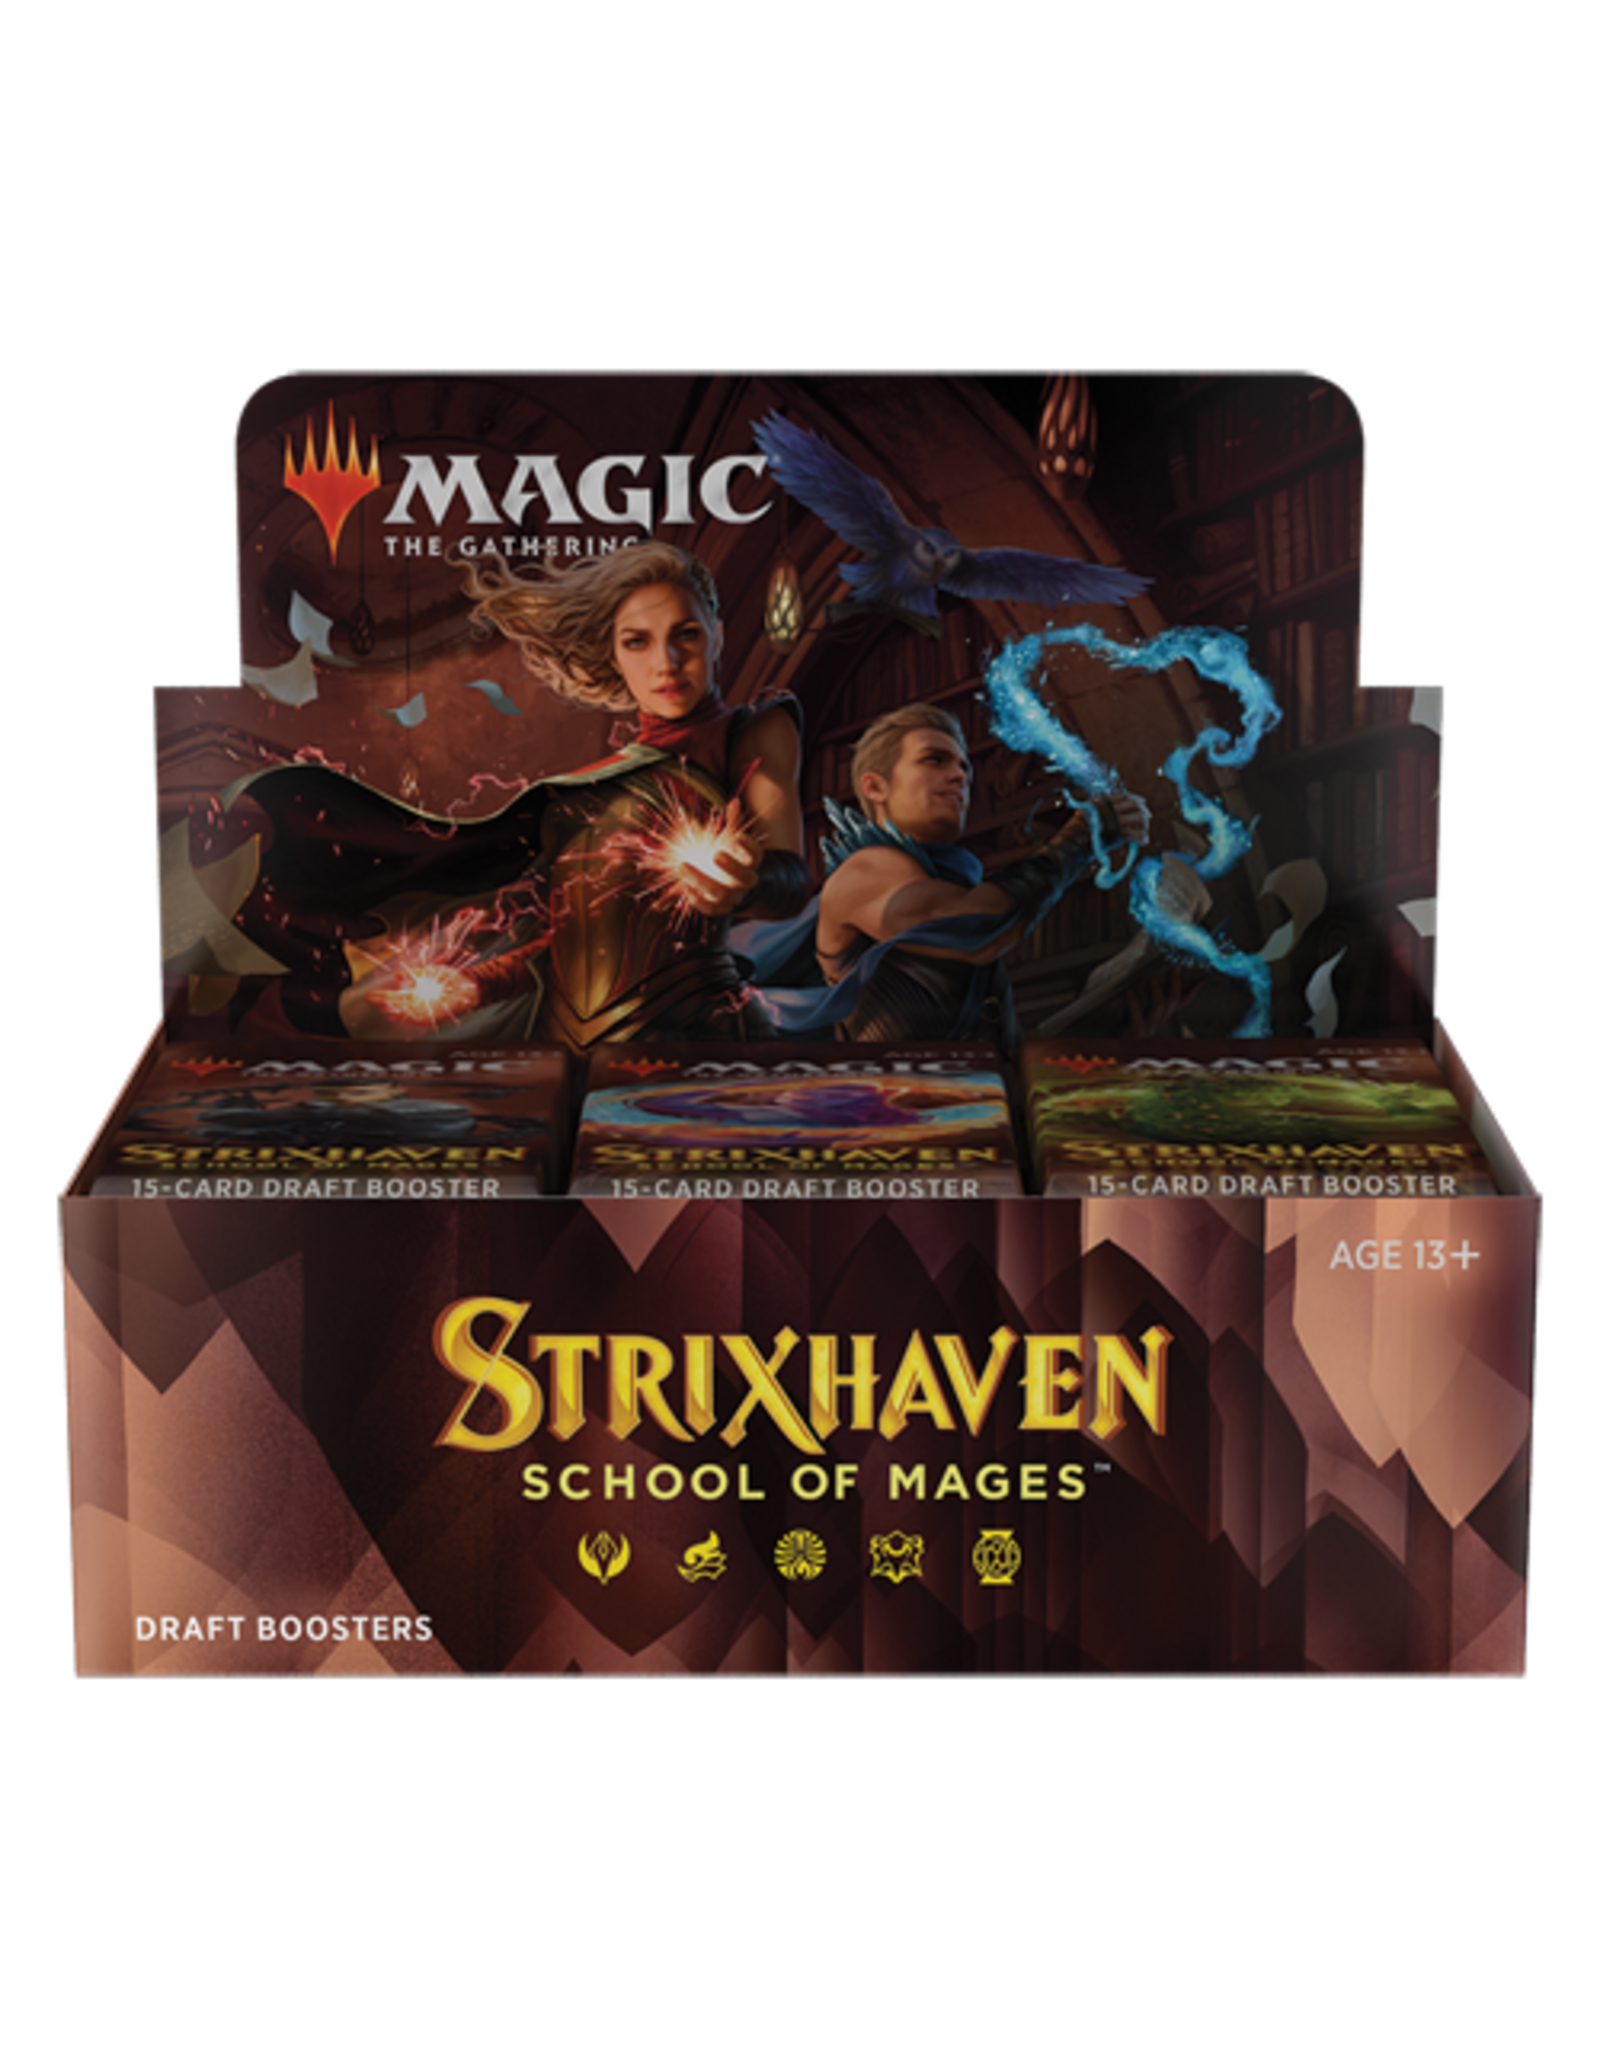 Magic Strixhaven Draft Booster Box